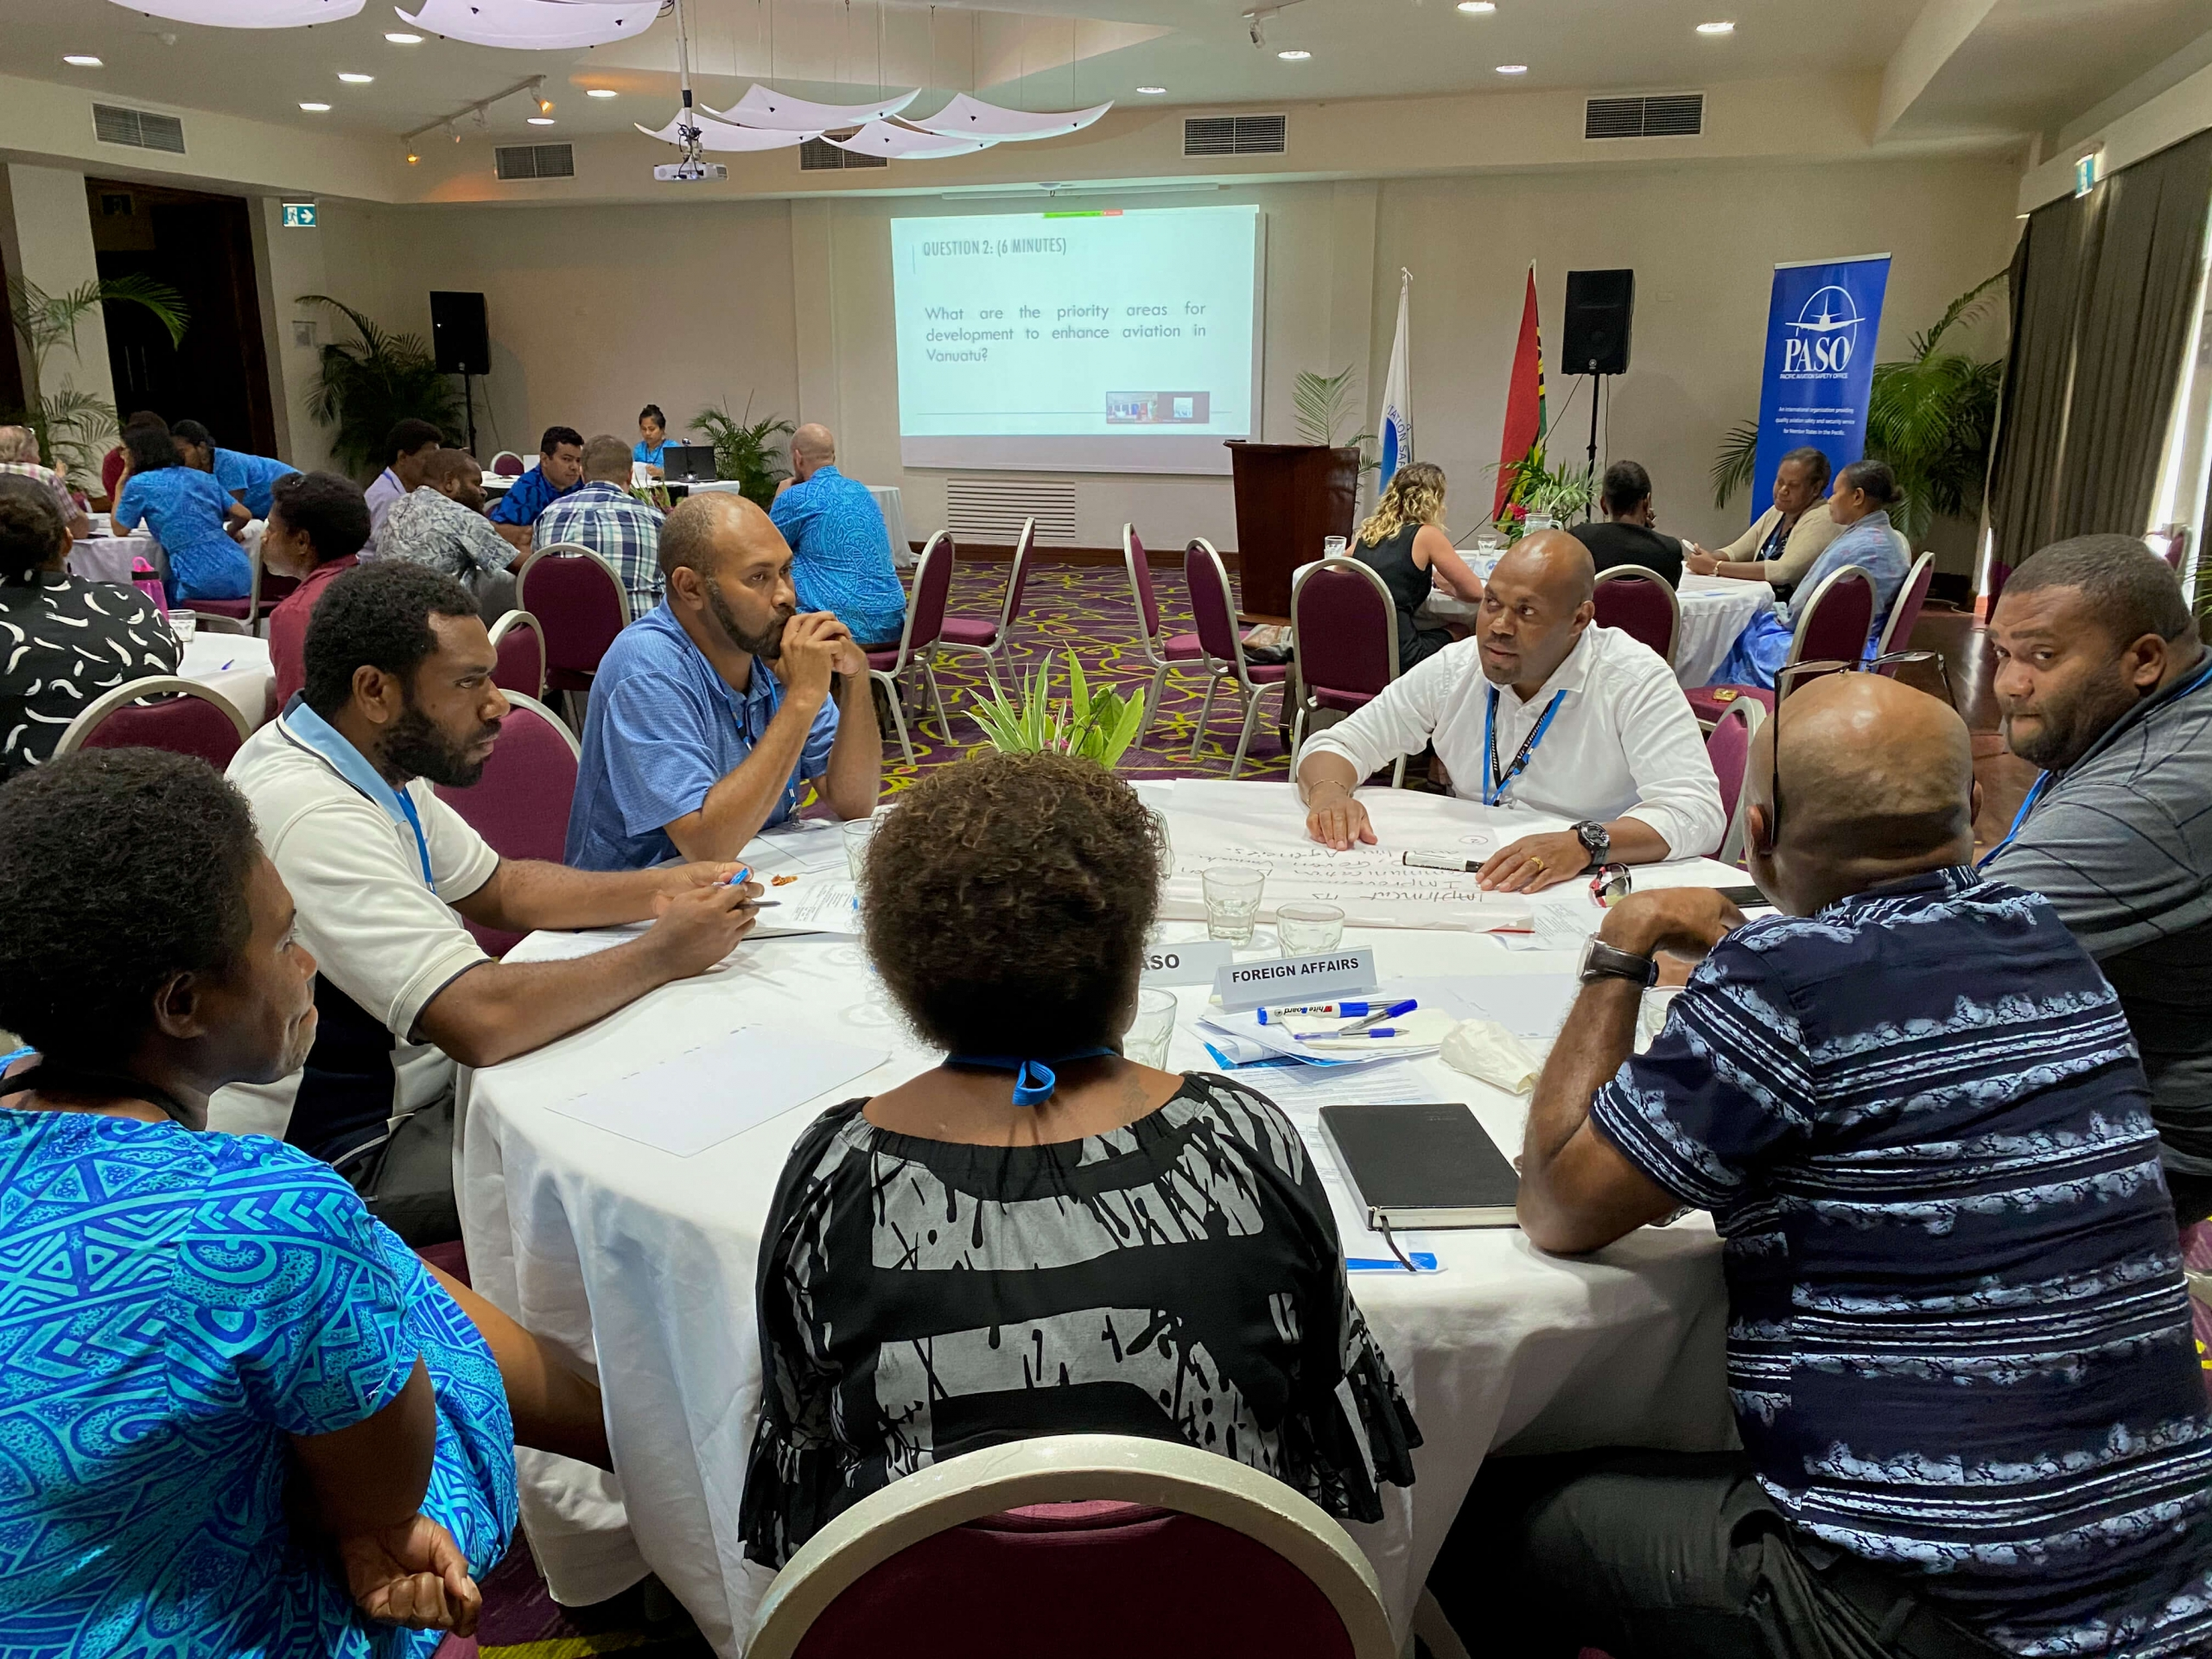 Participants at the Vanuatu aviation industry workshop discussed building a stronger and safer aviation industry. Credit: PASO.aero